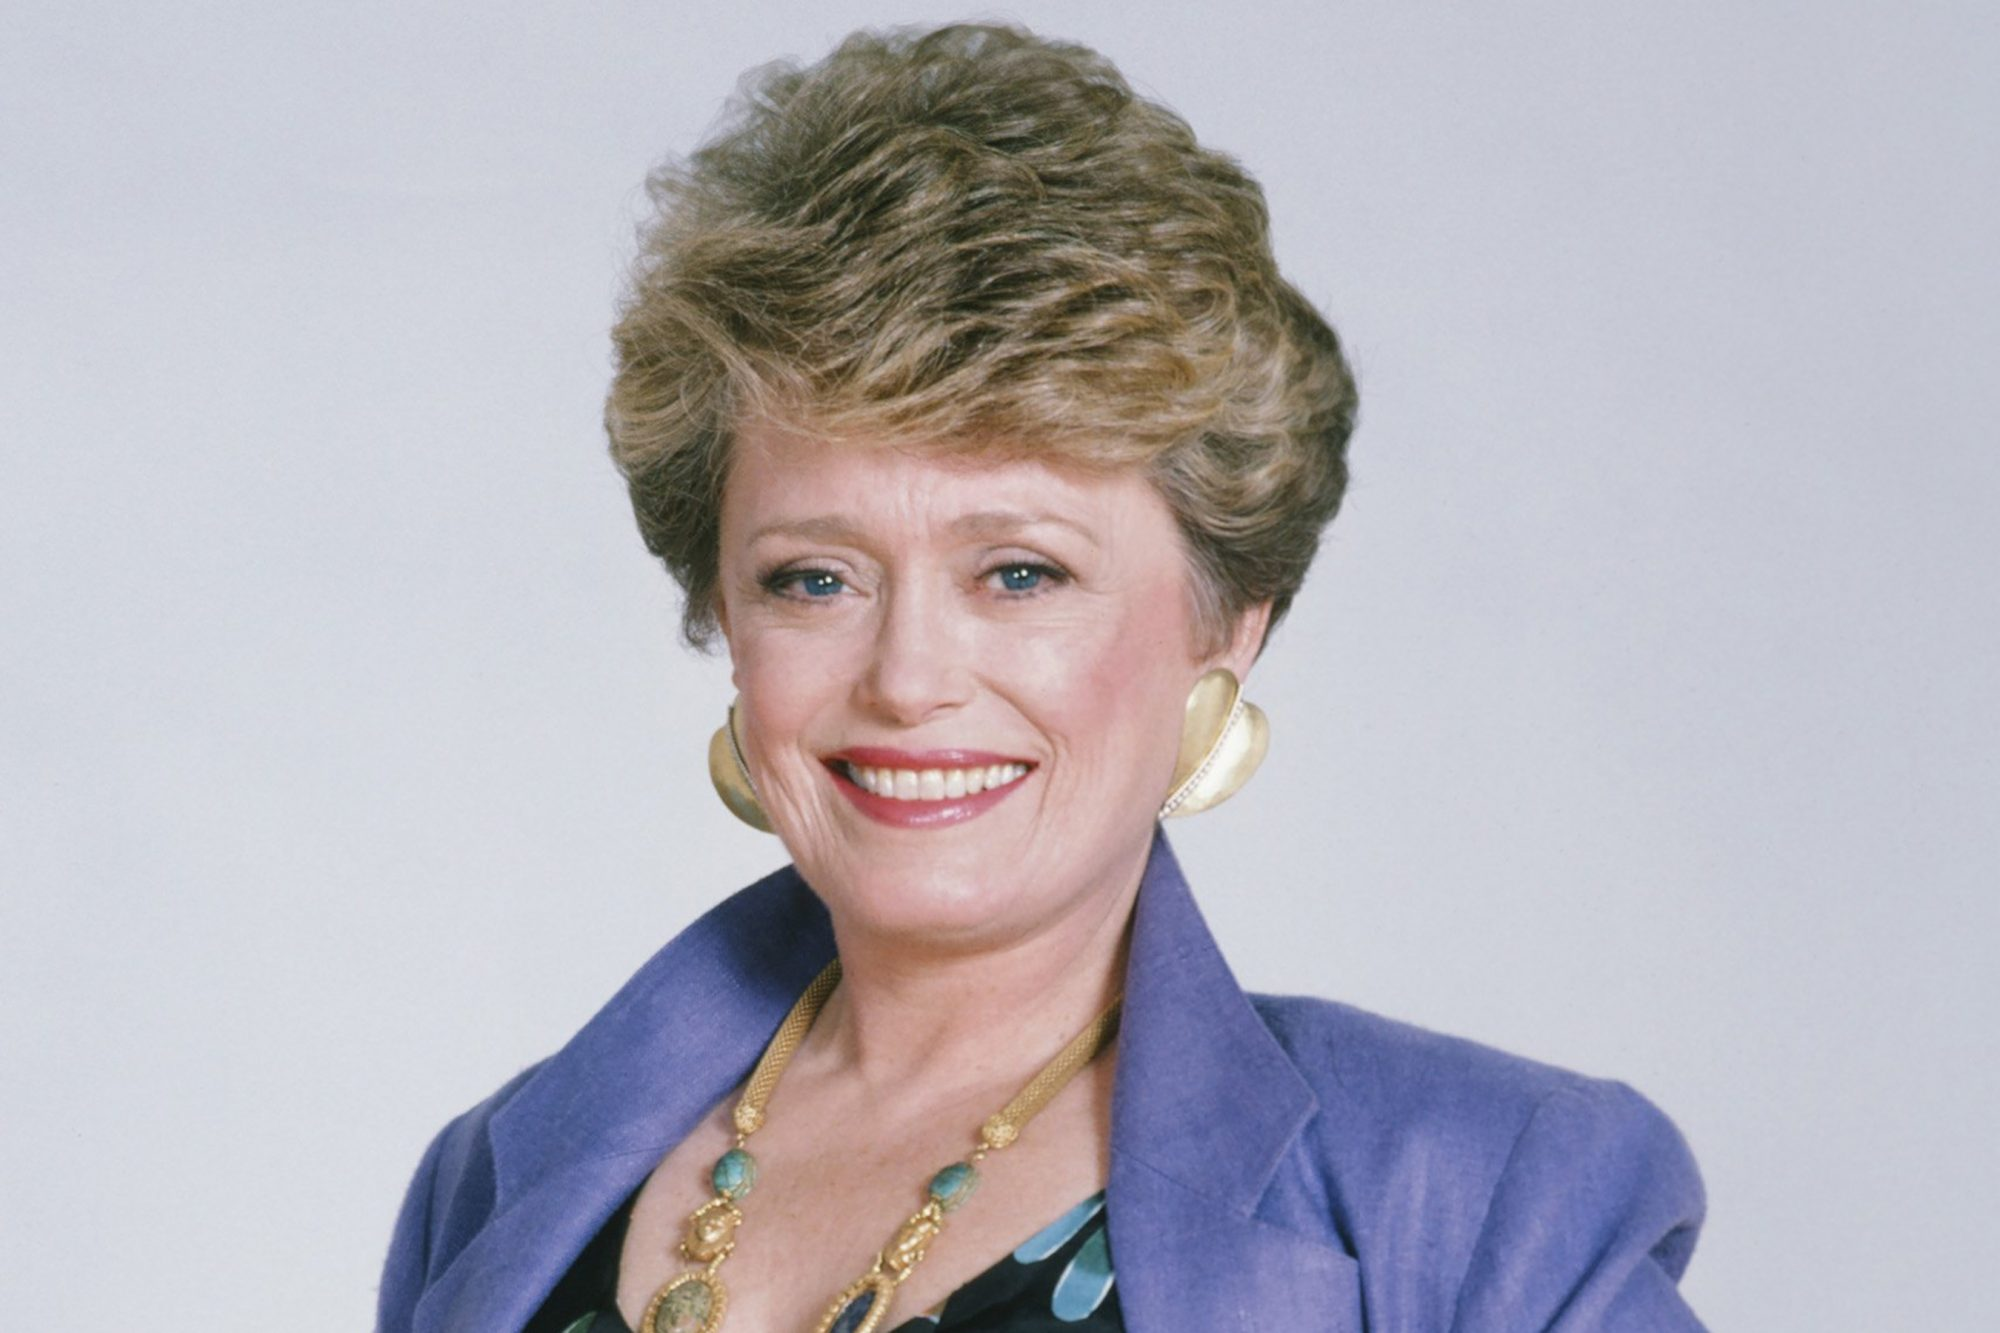 Rue McClanahan as Blanche on Golden Girls